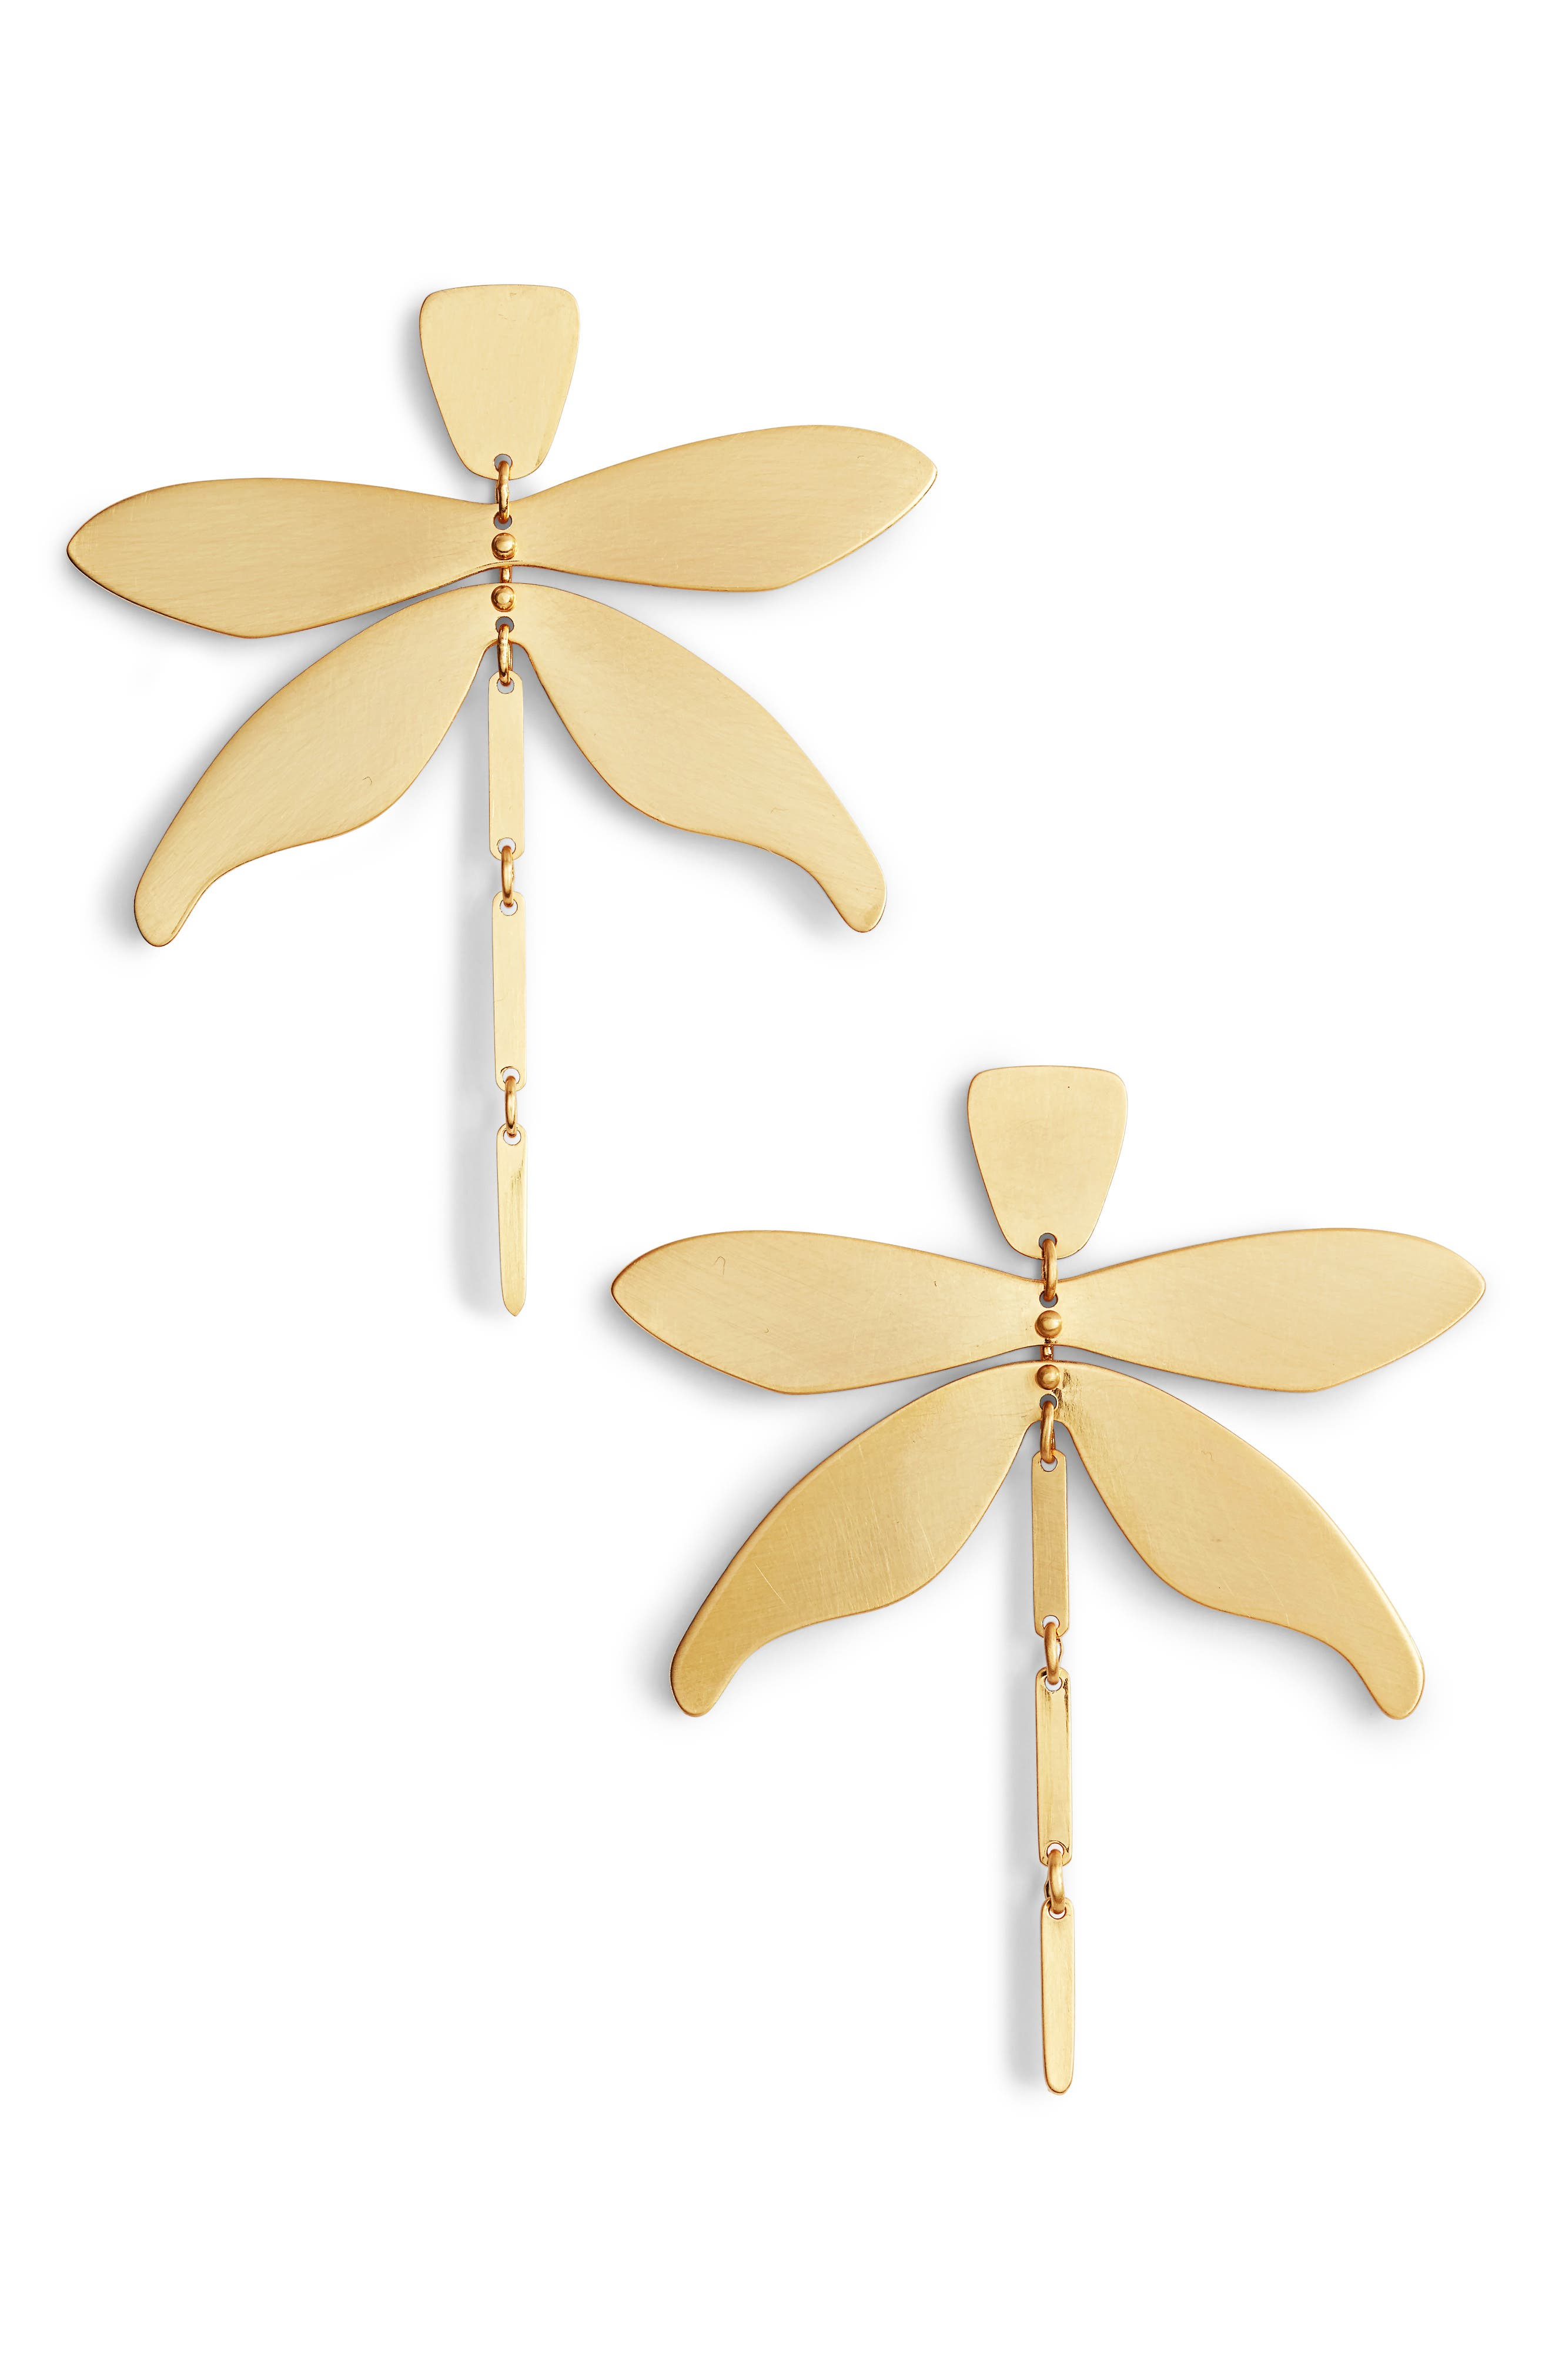 Articulated Dragonfly Earrings,                             Main thumbnail 1, color,                             Brass